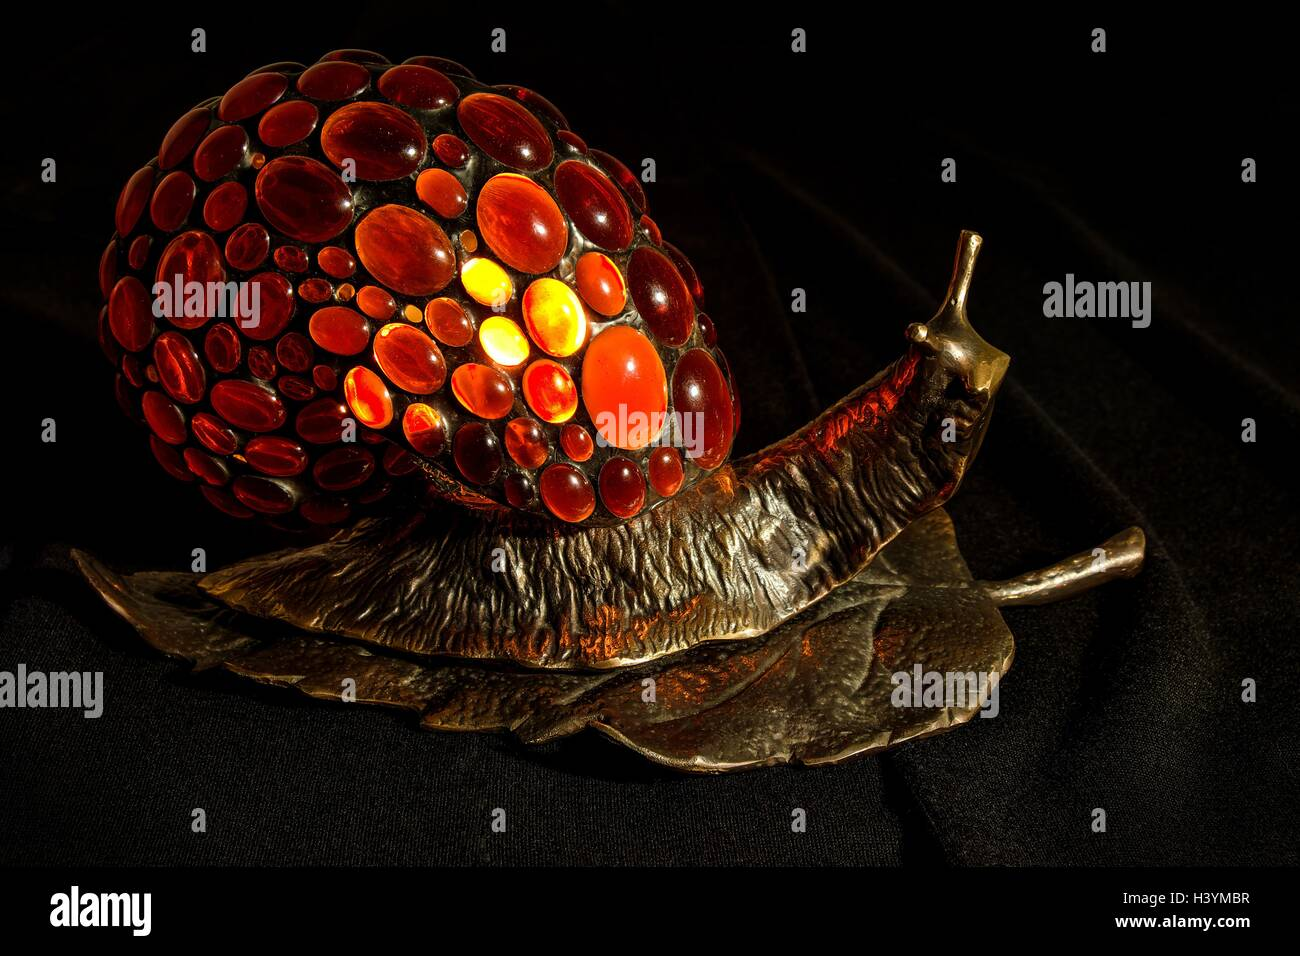 Handmade lamp in the form of a snail made of bronze and natural Baltic amber - Stock Image